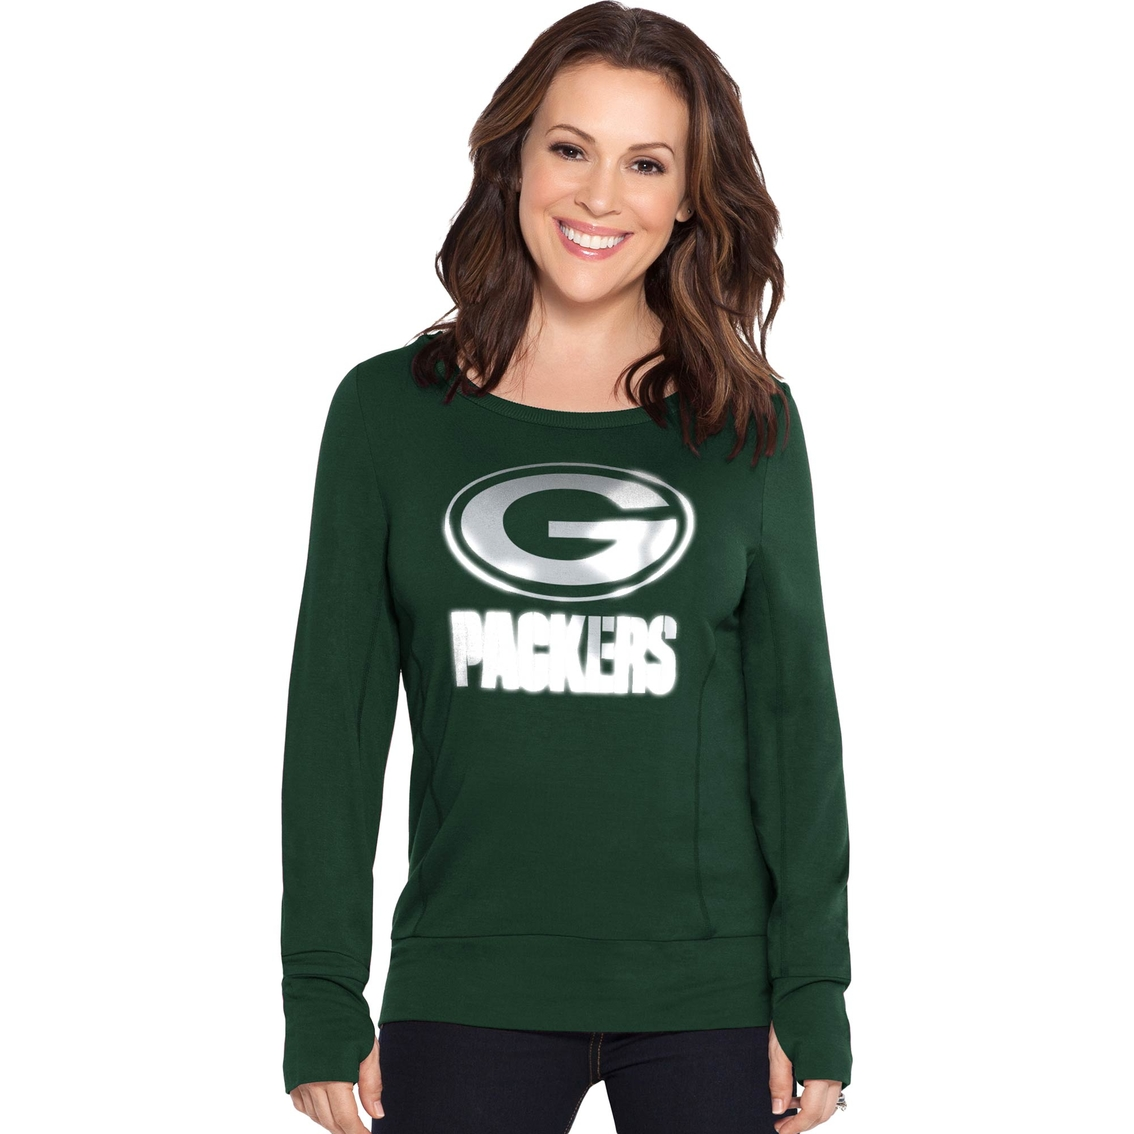 finest selection a3186 6e60d Touch By Alyssa Milano Nfl Green Bay Packers Women's Lateral ...